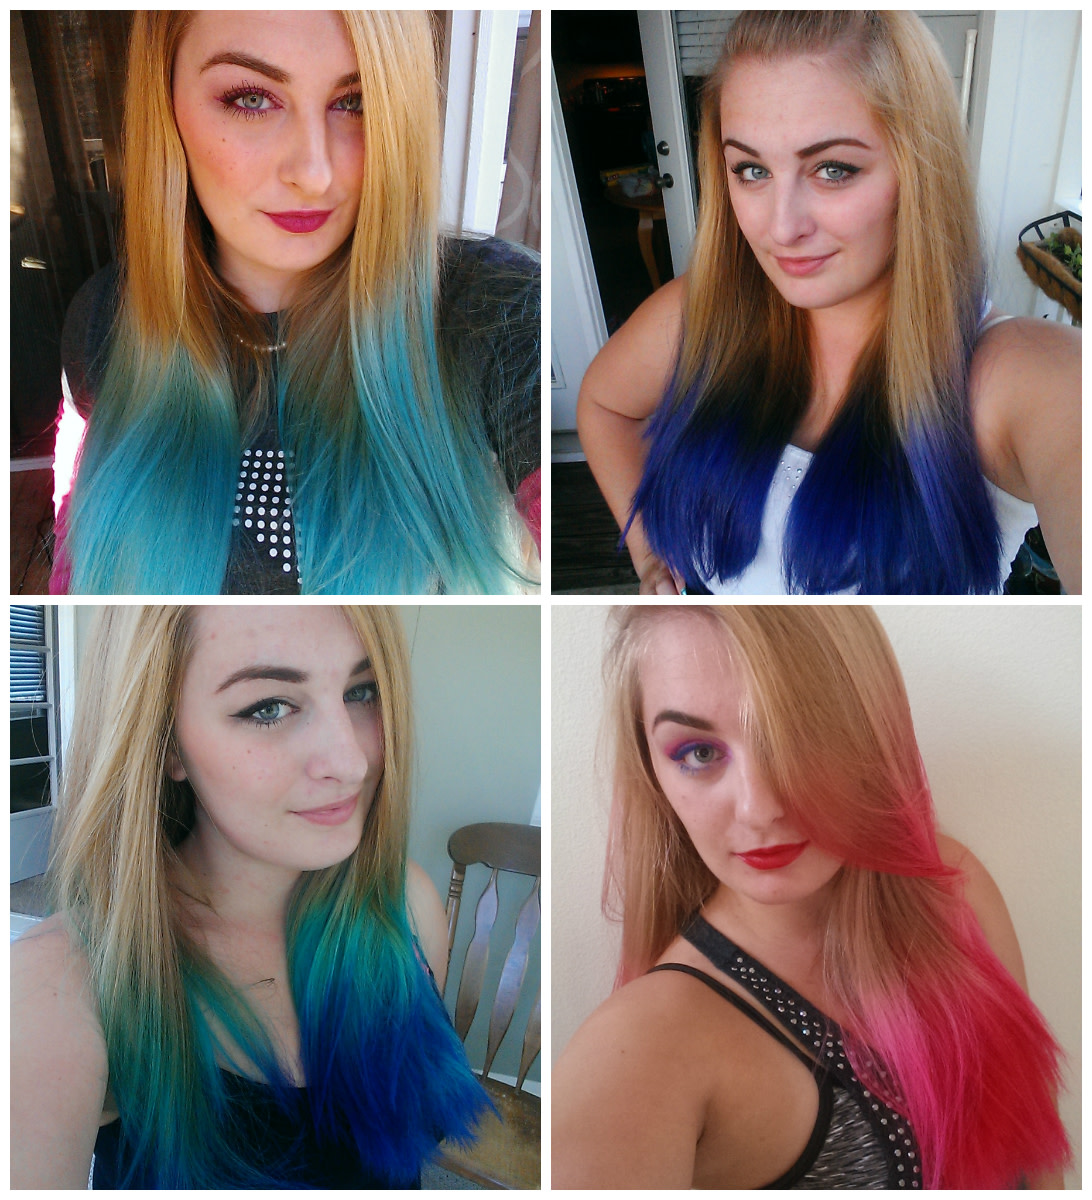 me and my many different hair colors!